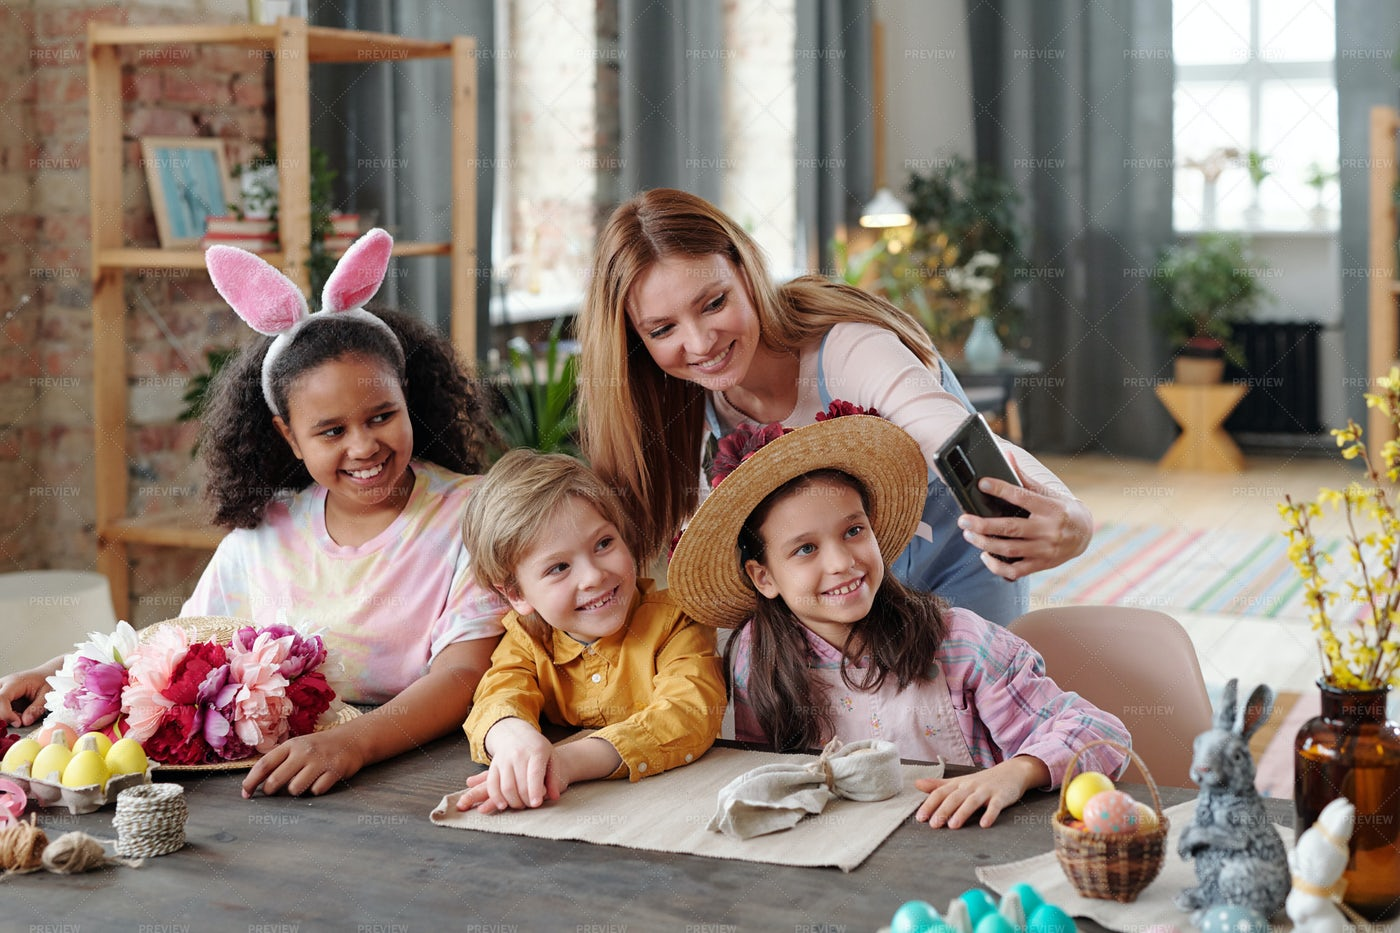 Woman Making Selfie With Children: Stock Photos